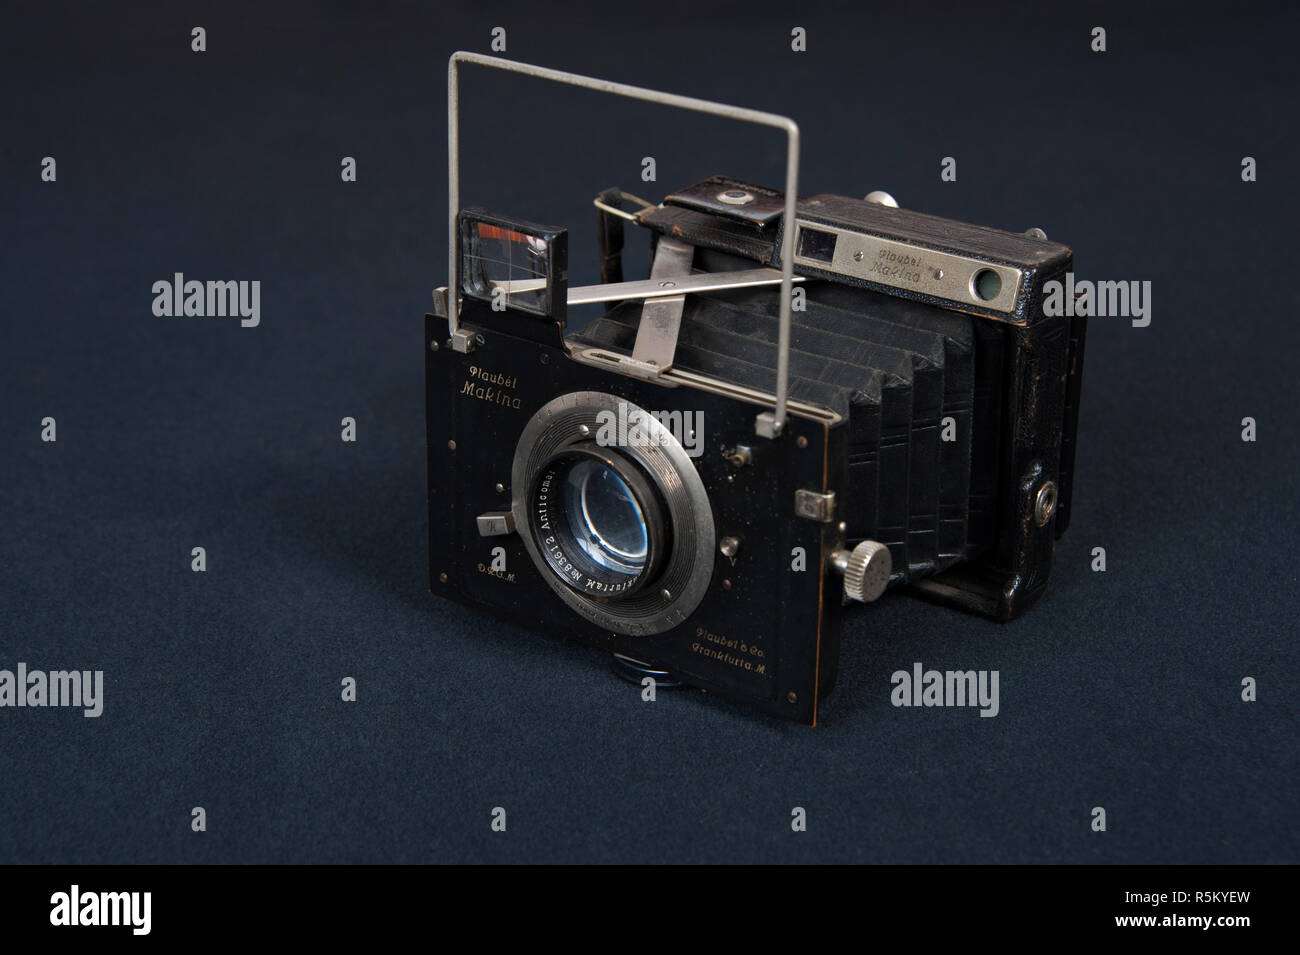 A vintage professional roll film camera made in Frankfurt Germany, called the Plaubel Makina. - Stock Image